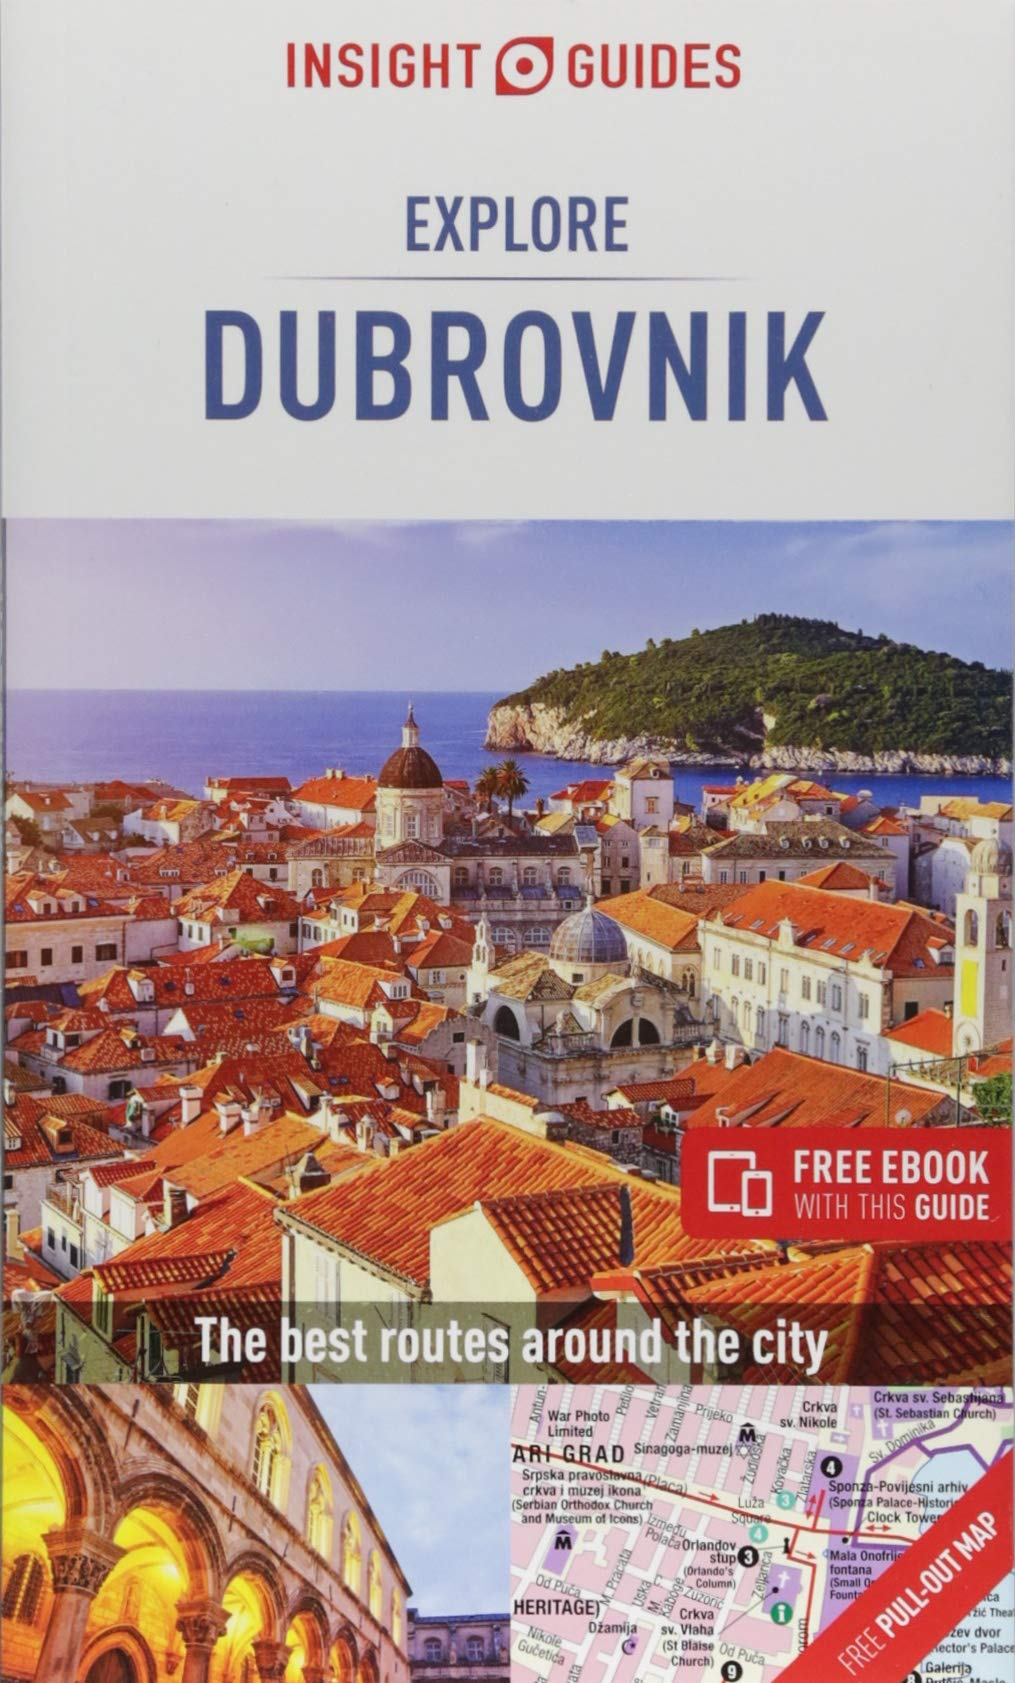 Insight Guides: Explore Dubrovnik - Dubrovnik Guide Book (Insight Explore Guides)